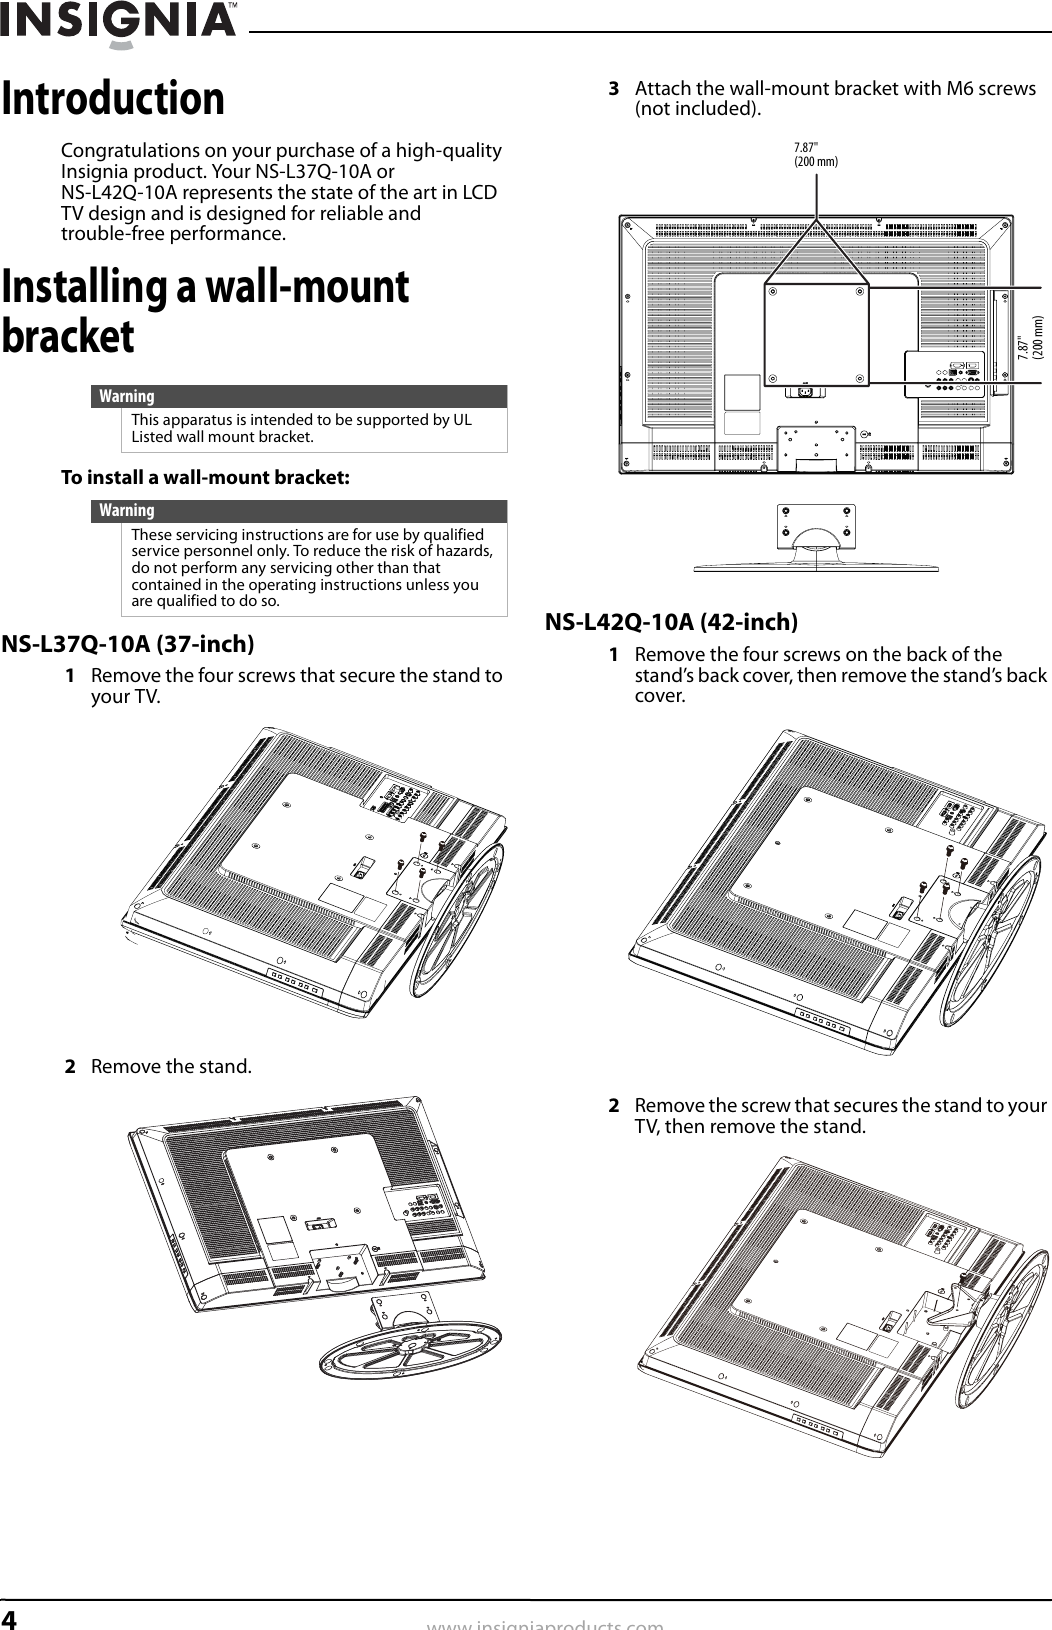 Insignia tv troubleshooting guide gallery free troubleshooting insignia tv troubleshooting guide choice image free insignia ns l37q 10a users manual page 8 of sciox Image collections